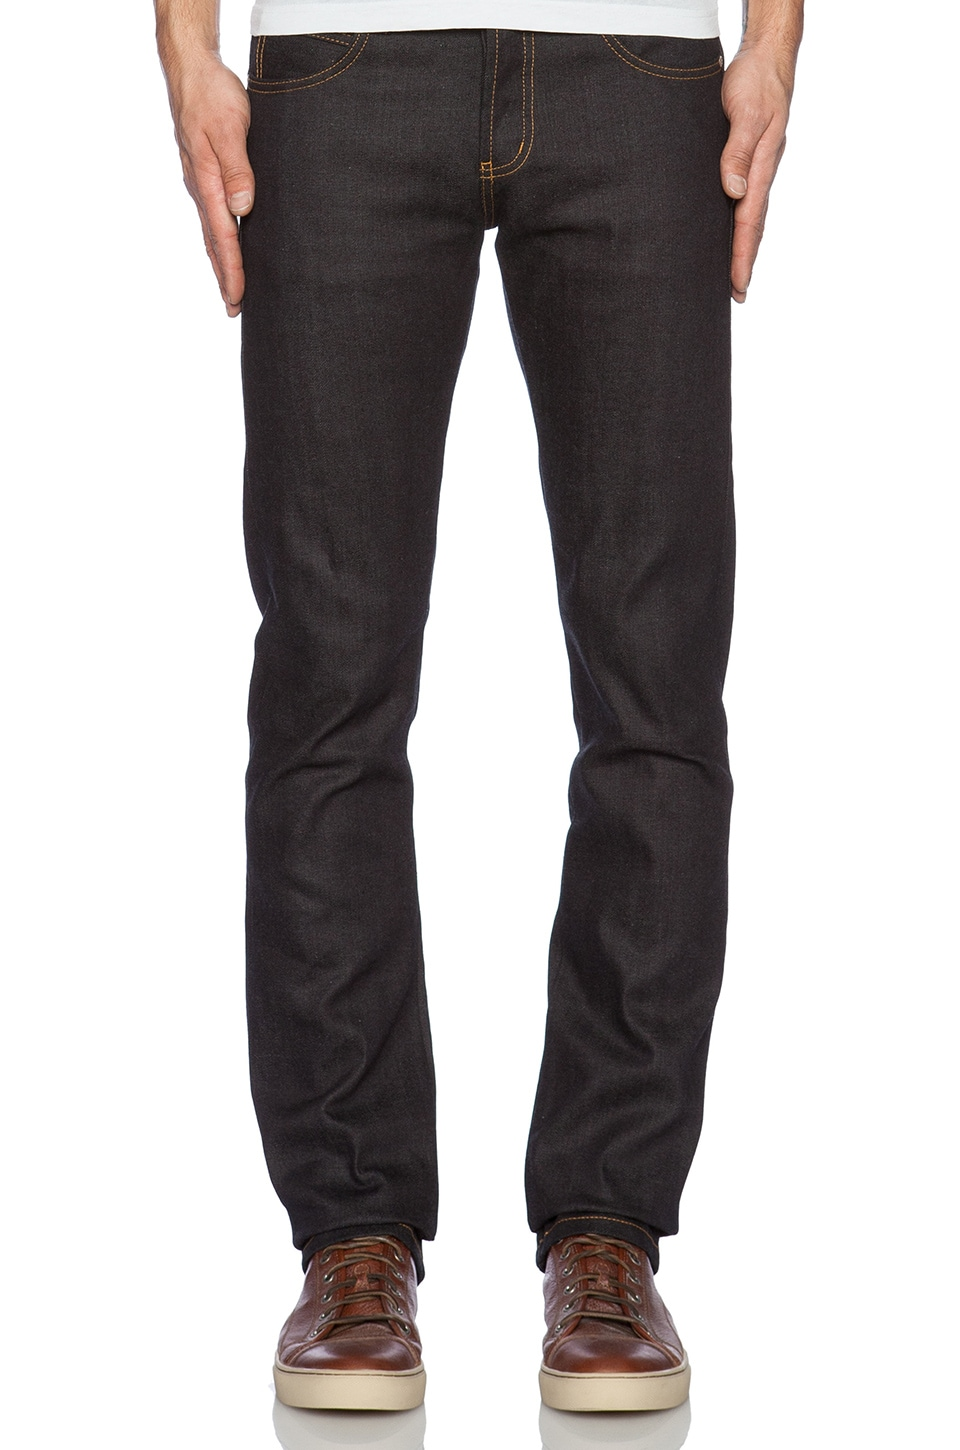 Skinny Guy 11.5oz Deep Indigo Stretch Selvedge by Naked & Famous Denim